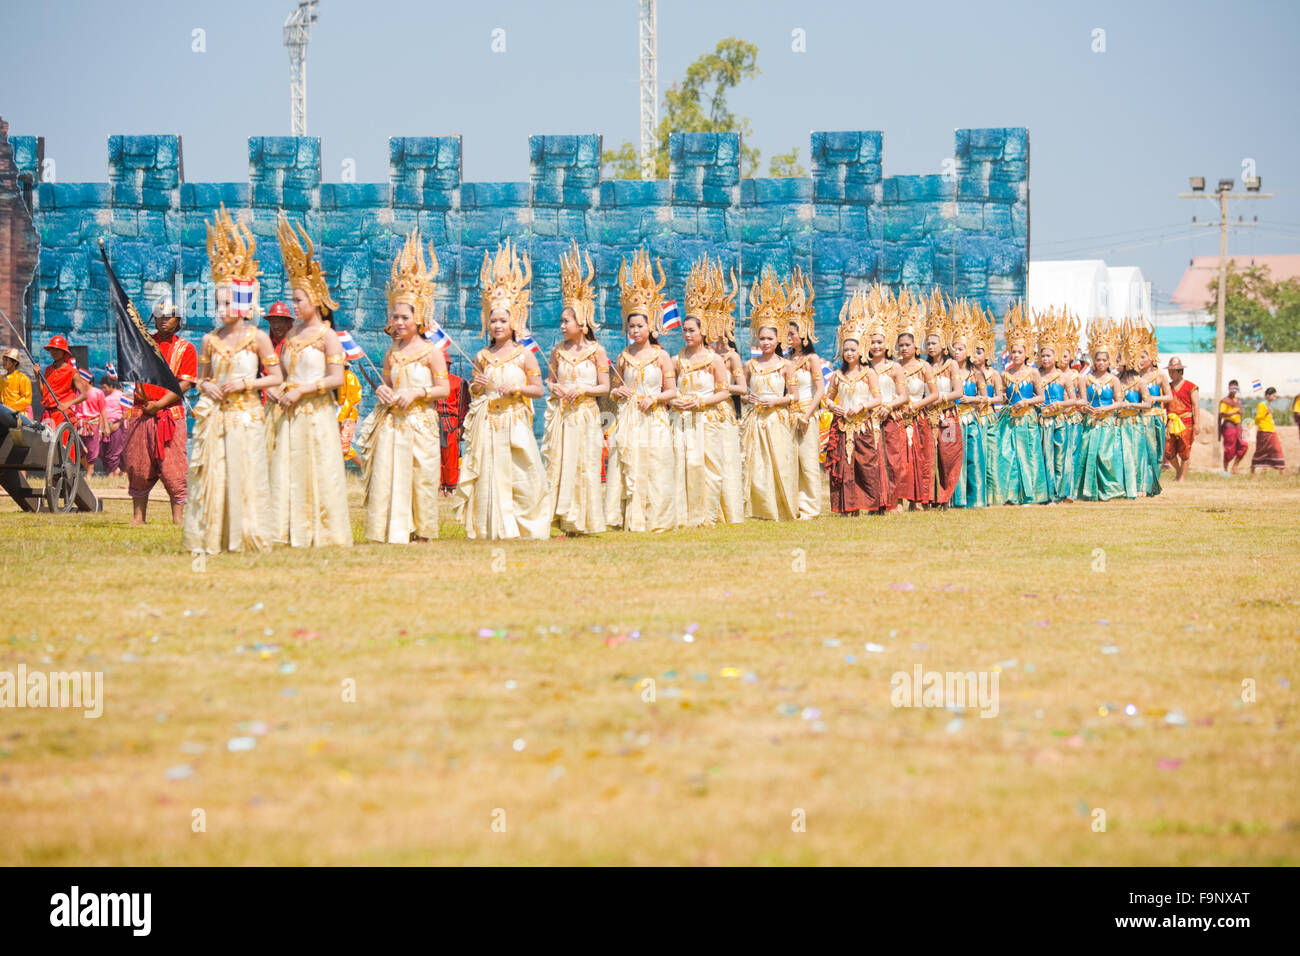 Beautifully dressed Thai dancers enter the stage to perform on field at the annual Surin Elephant Roundup Stock Photo